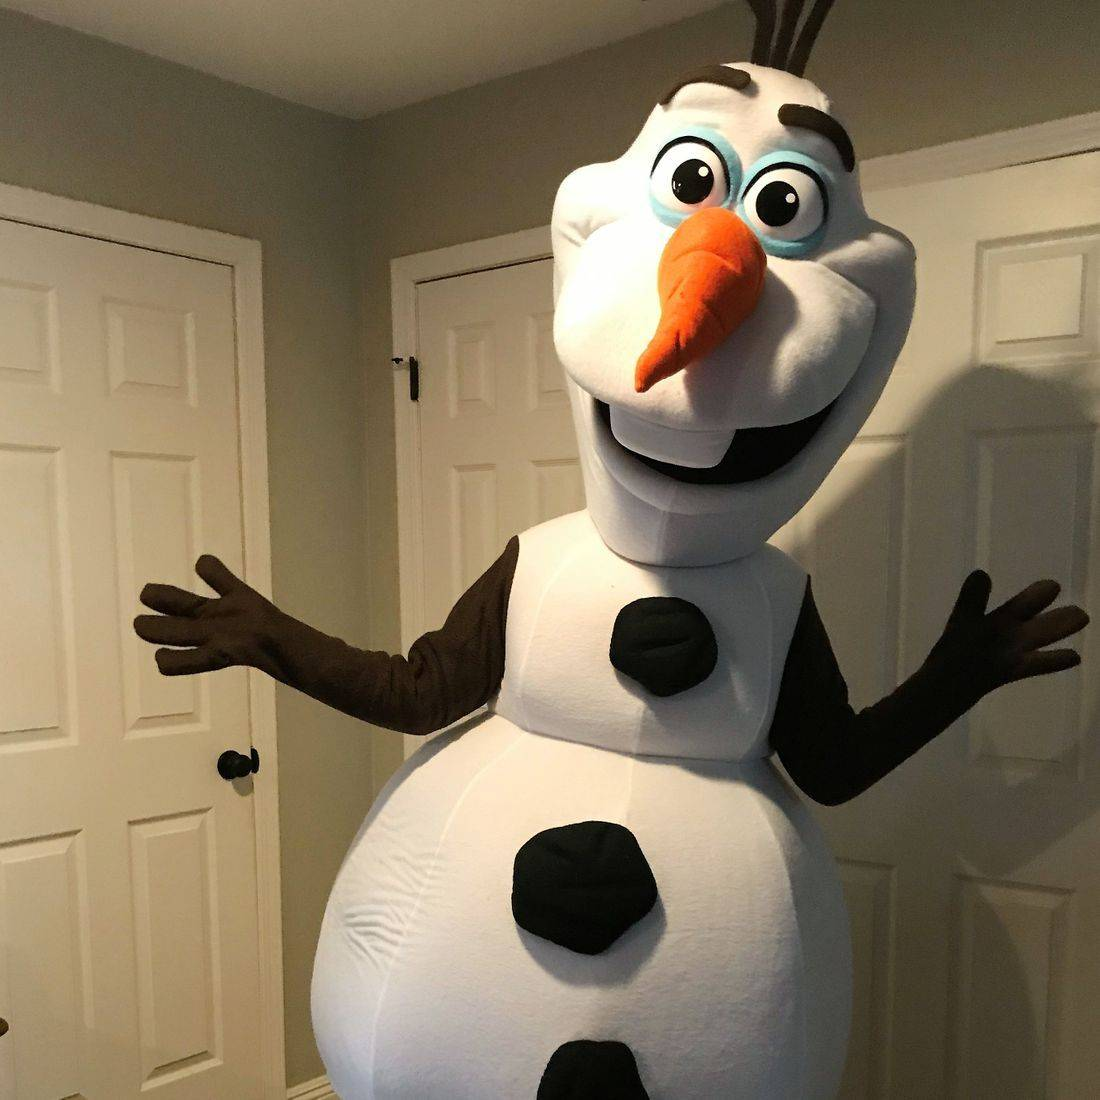 A white snowman costume with orange nose and brown arms smiling.